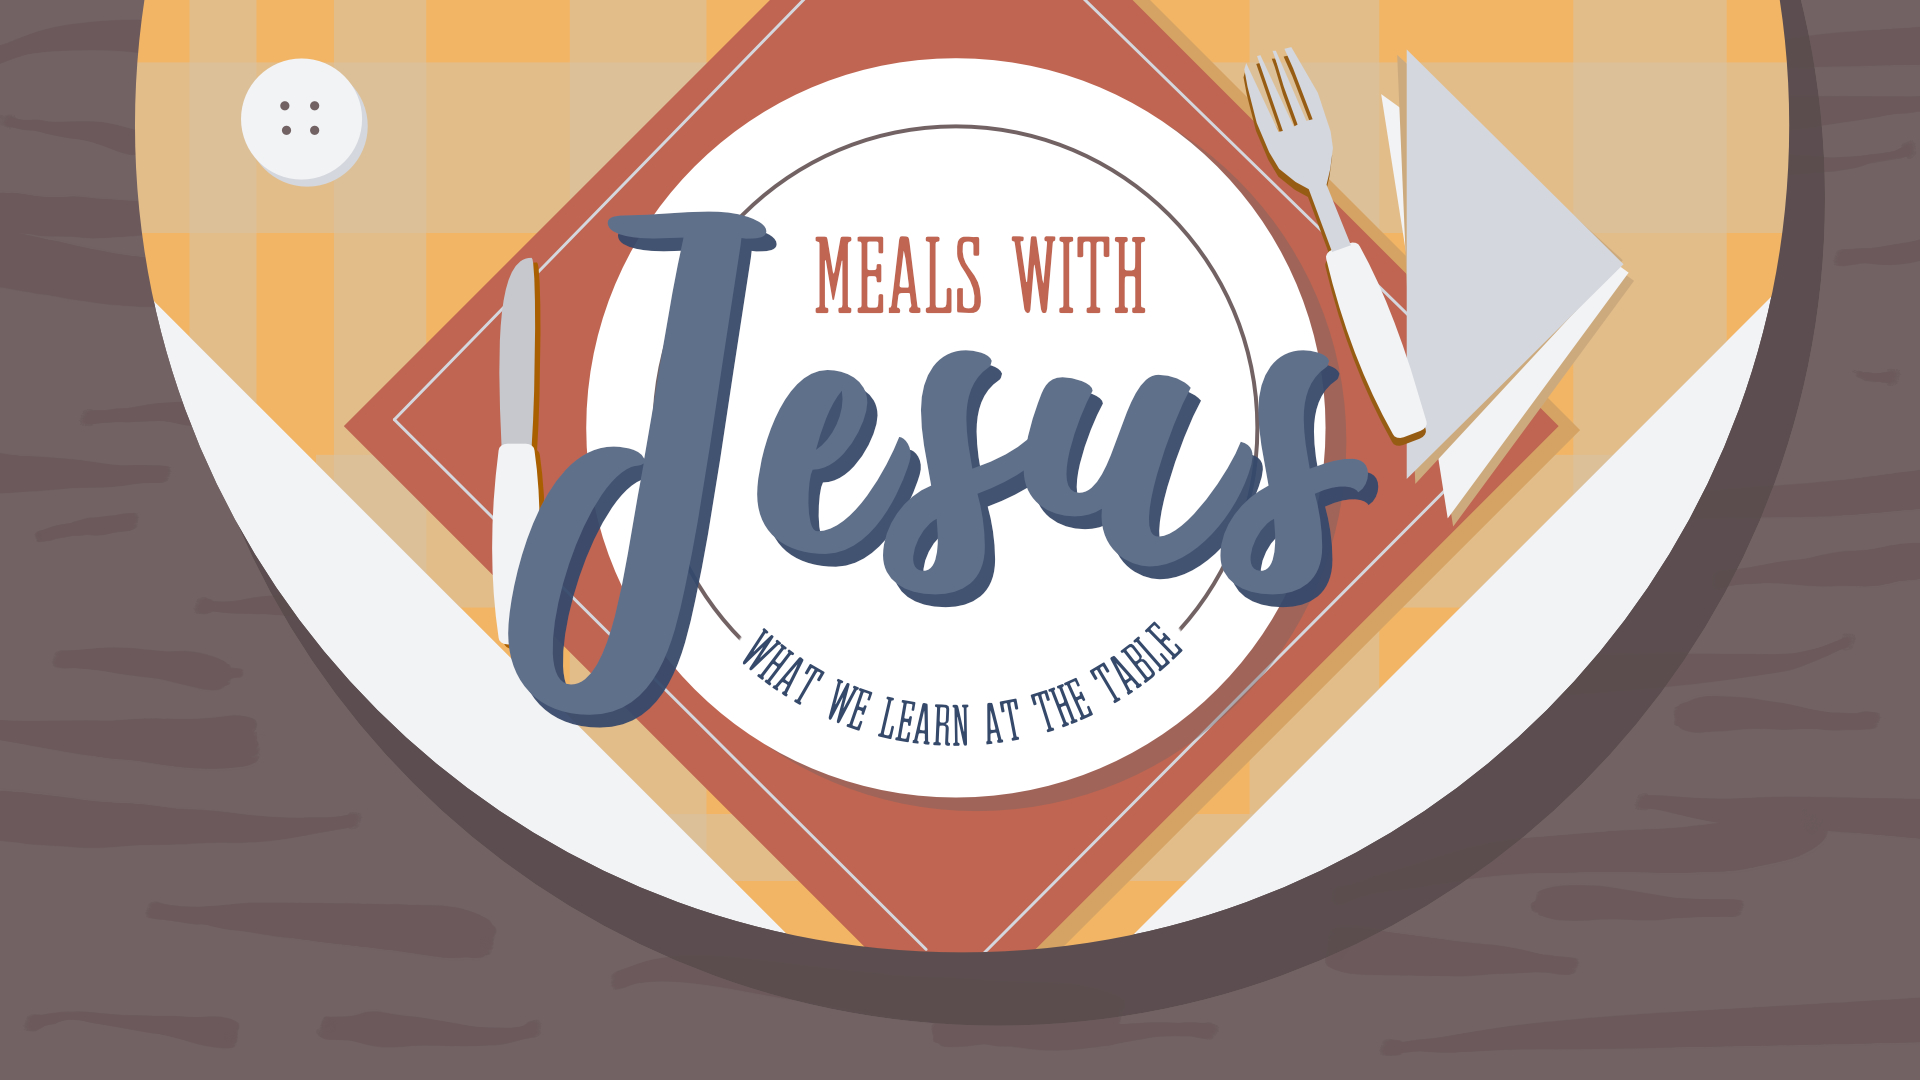 Meals With Jesus: Saying and Showing Grace